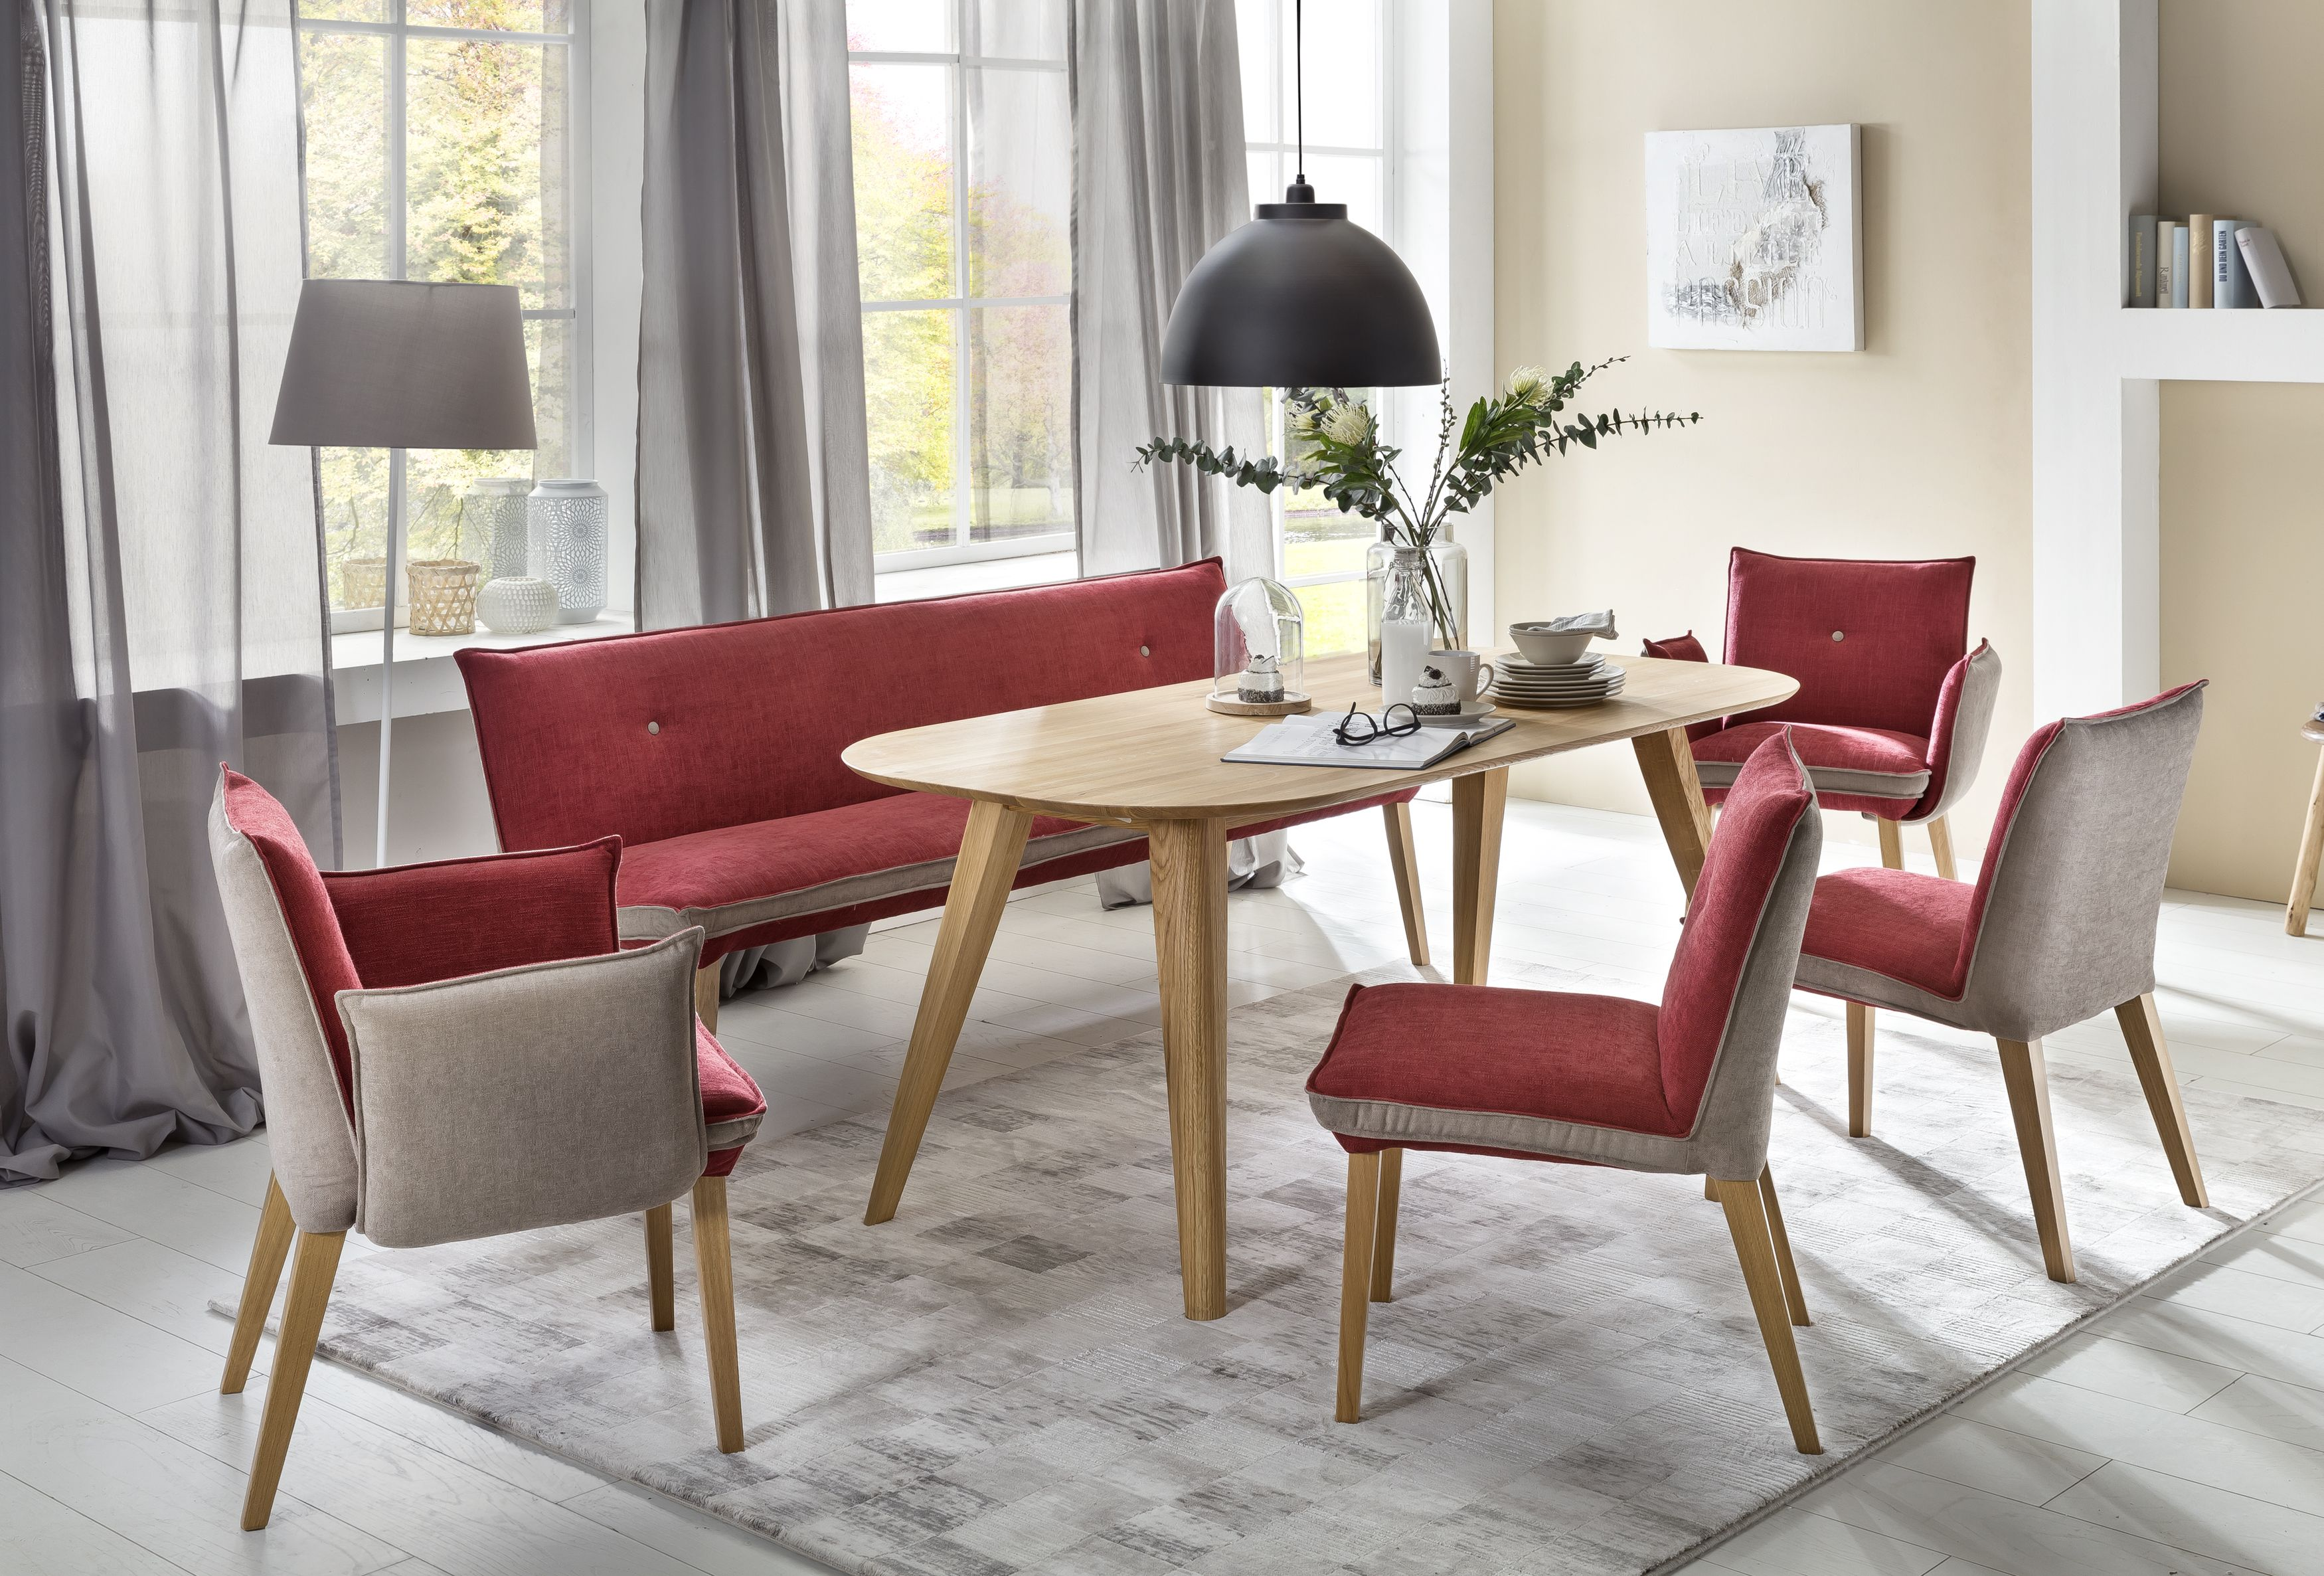 furniture classic wood best large rustic of table also dining f wooden impressive white is padded room kind espresso board a and